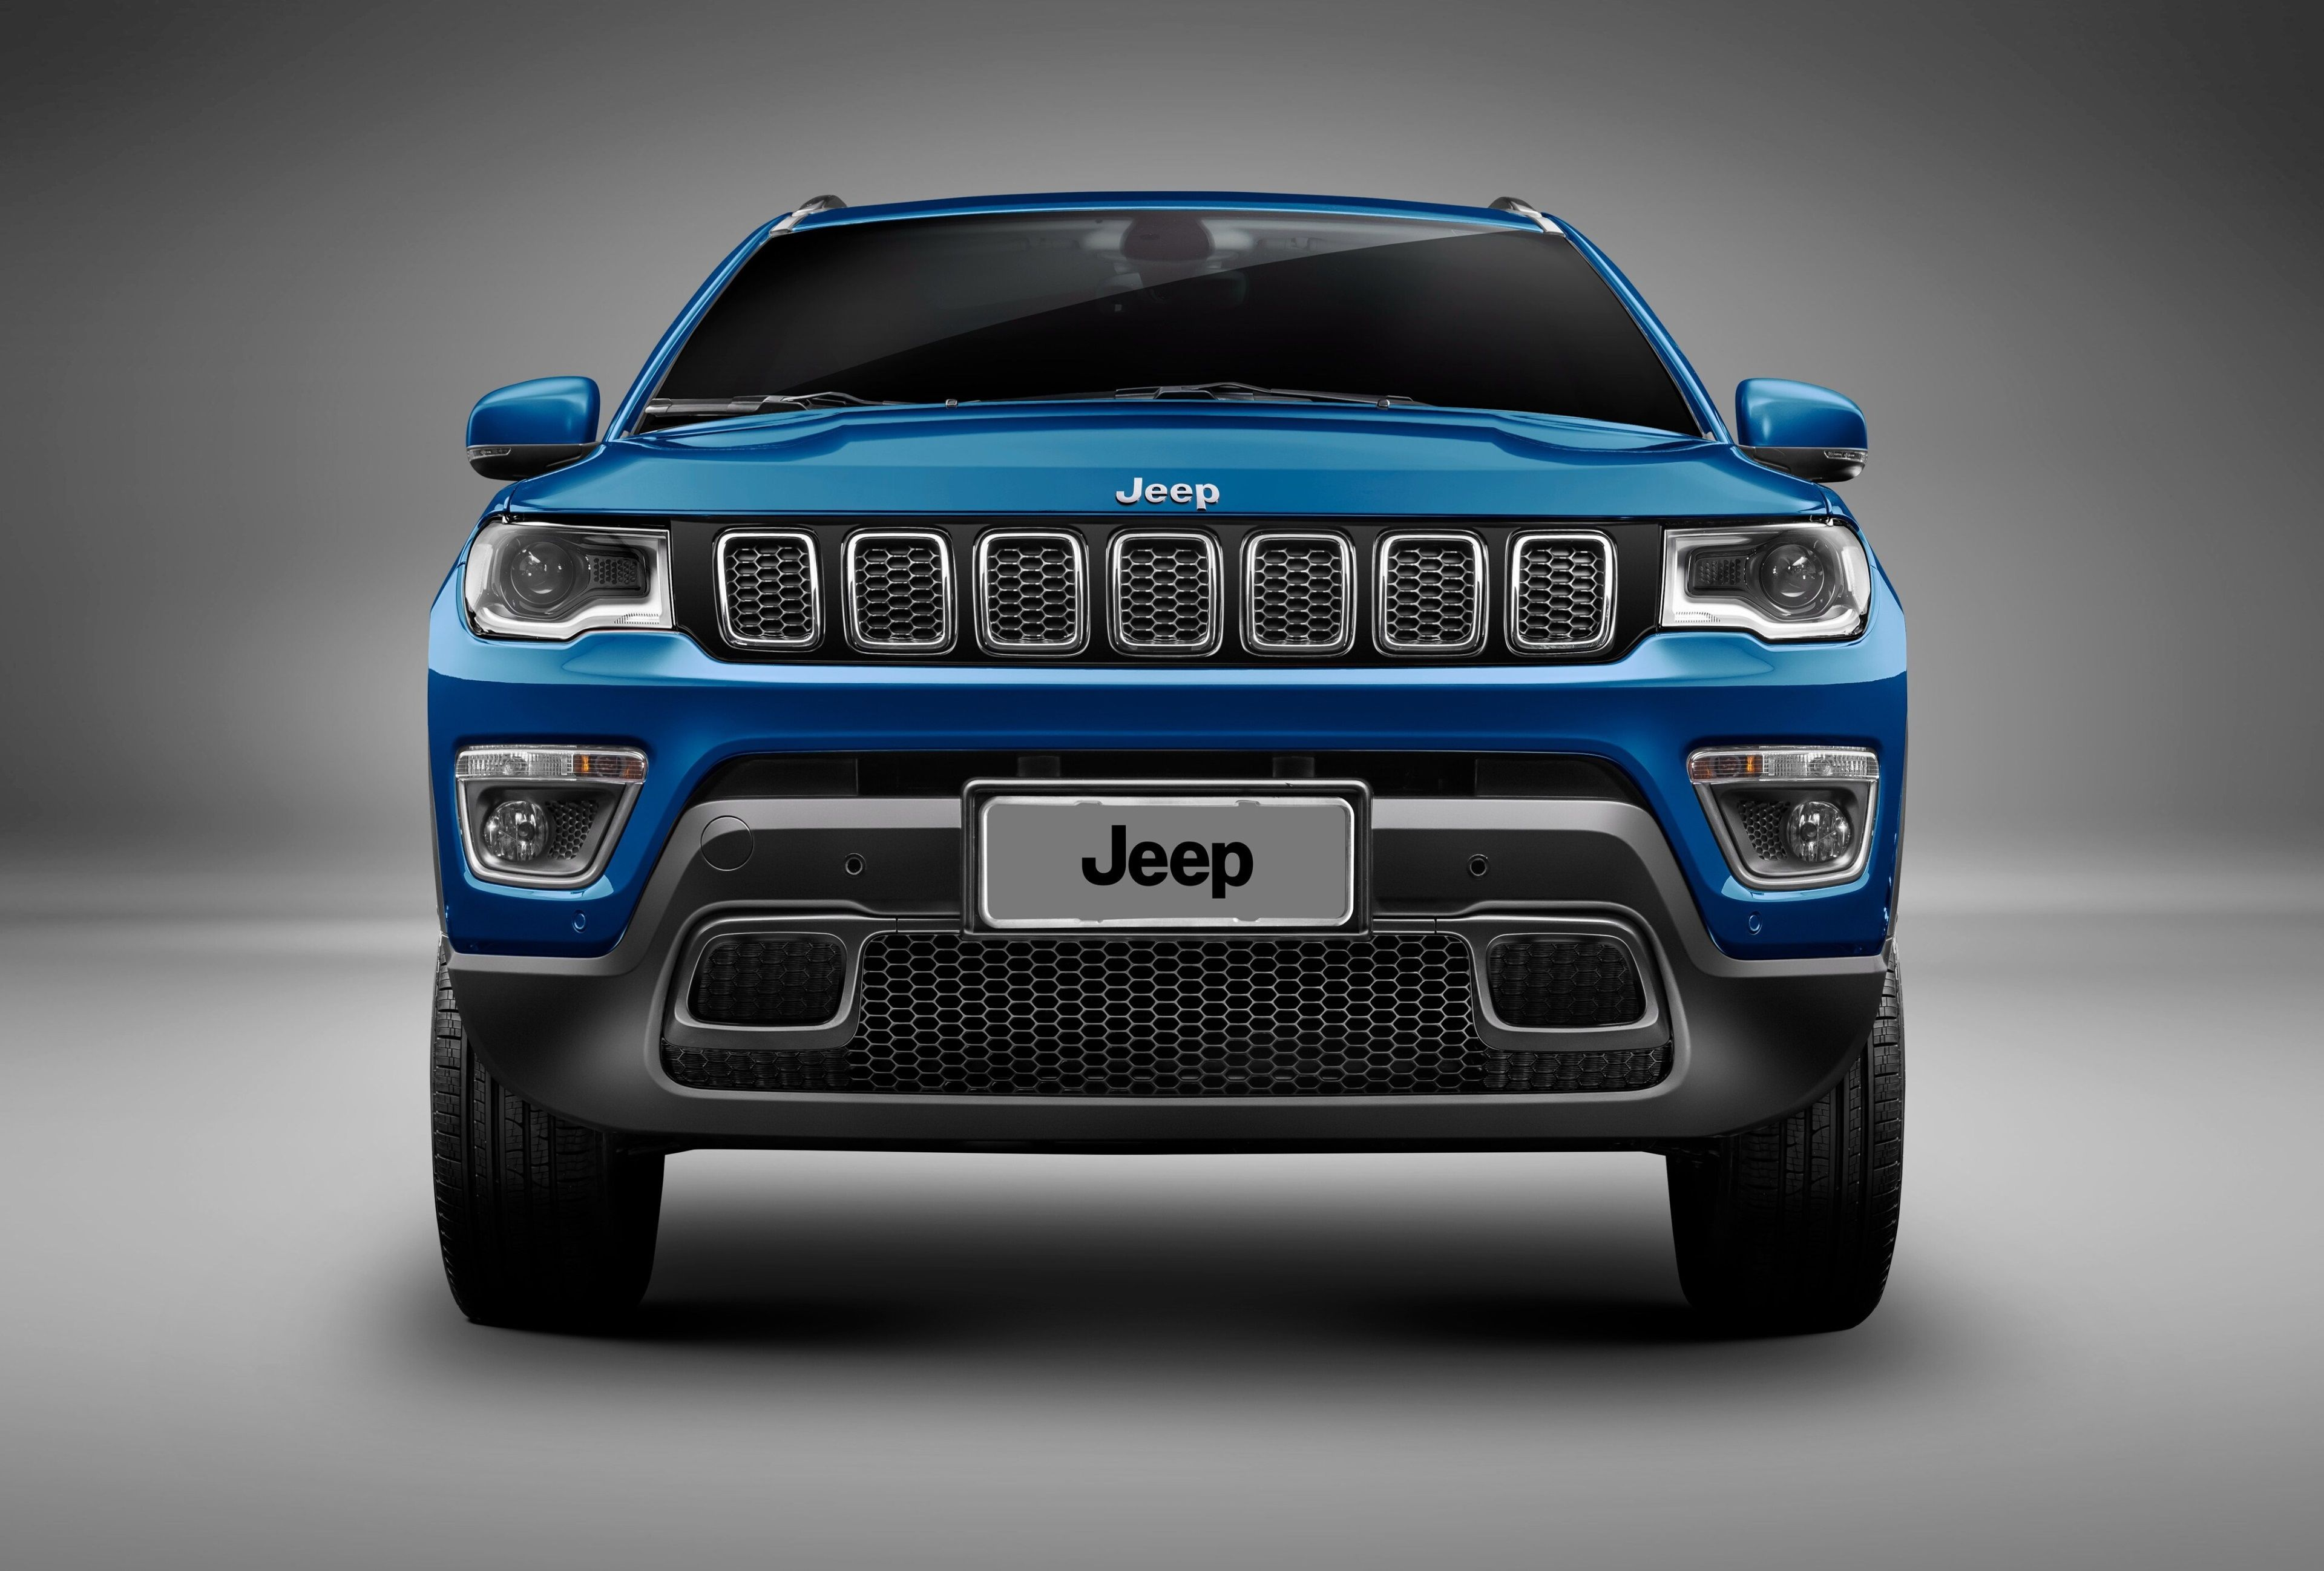 3840x2596 Jeep Compass Longitude 4k Backgrounds Free Download Carros